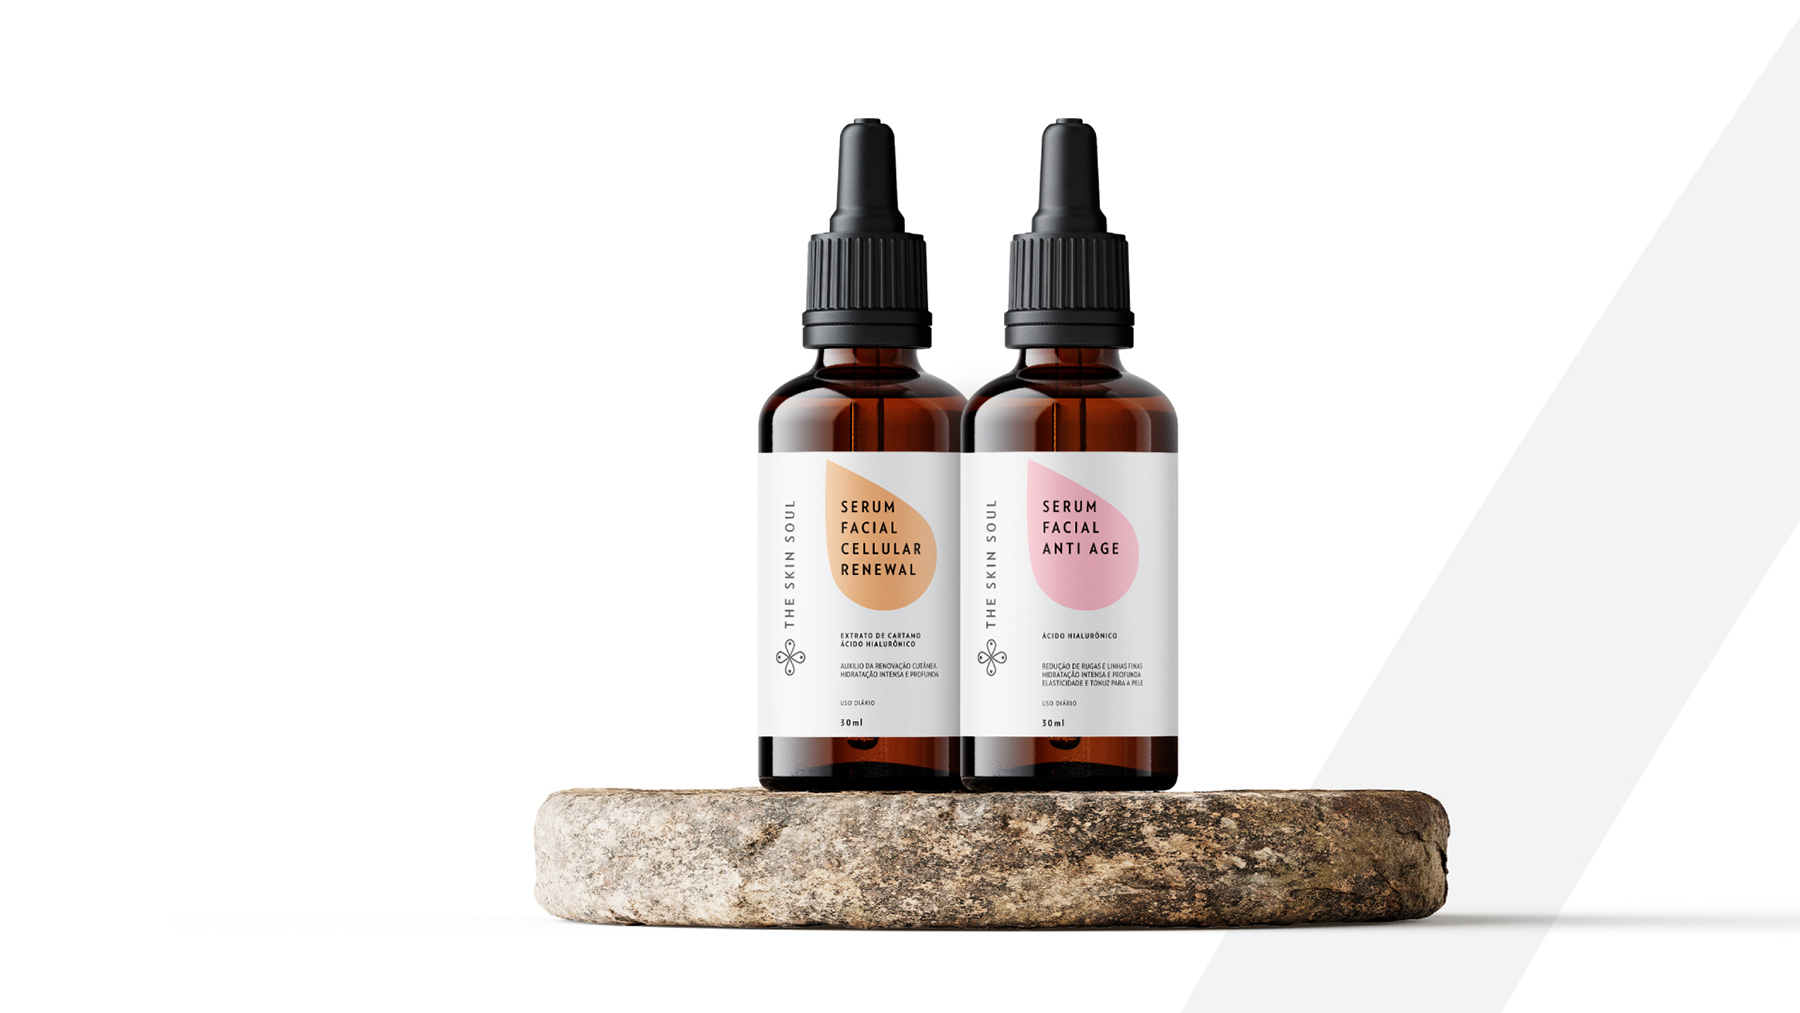 The Skin Soul Brand and Packaging Design by Agência Bud